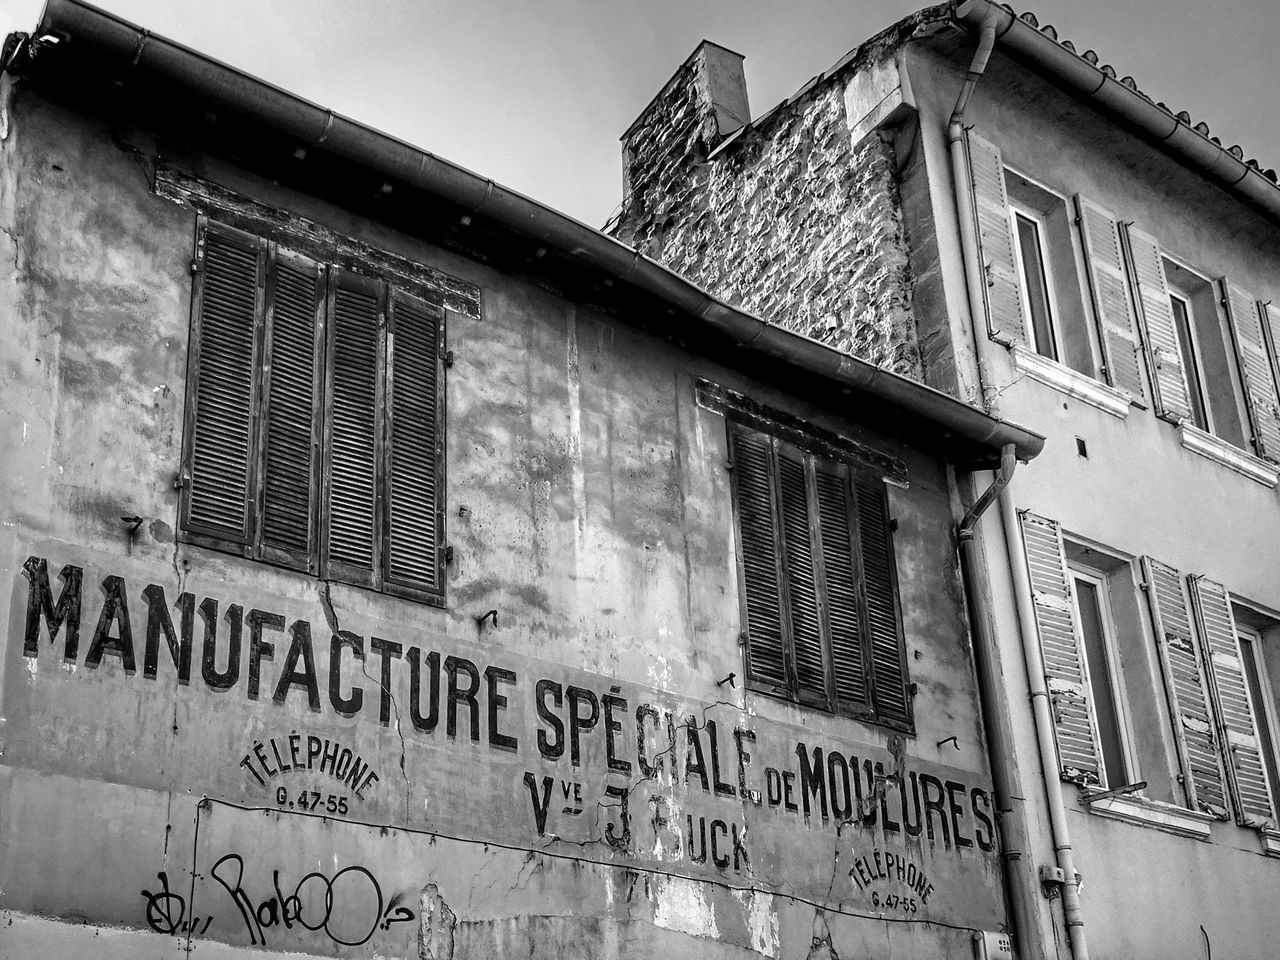 Text Outdoors Architecture No People Day Sky SONY DSC-HX400V Arts Culture And Entertainment Street Art Graffiti The World Street Photo Message To The World Message On The Wall Building Exterior Architecture Monochrome Photography Monochrome _ Collection EyeEm Bnw Bnw_society Bnw_captures